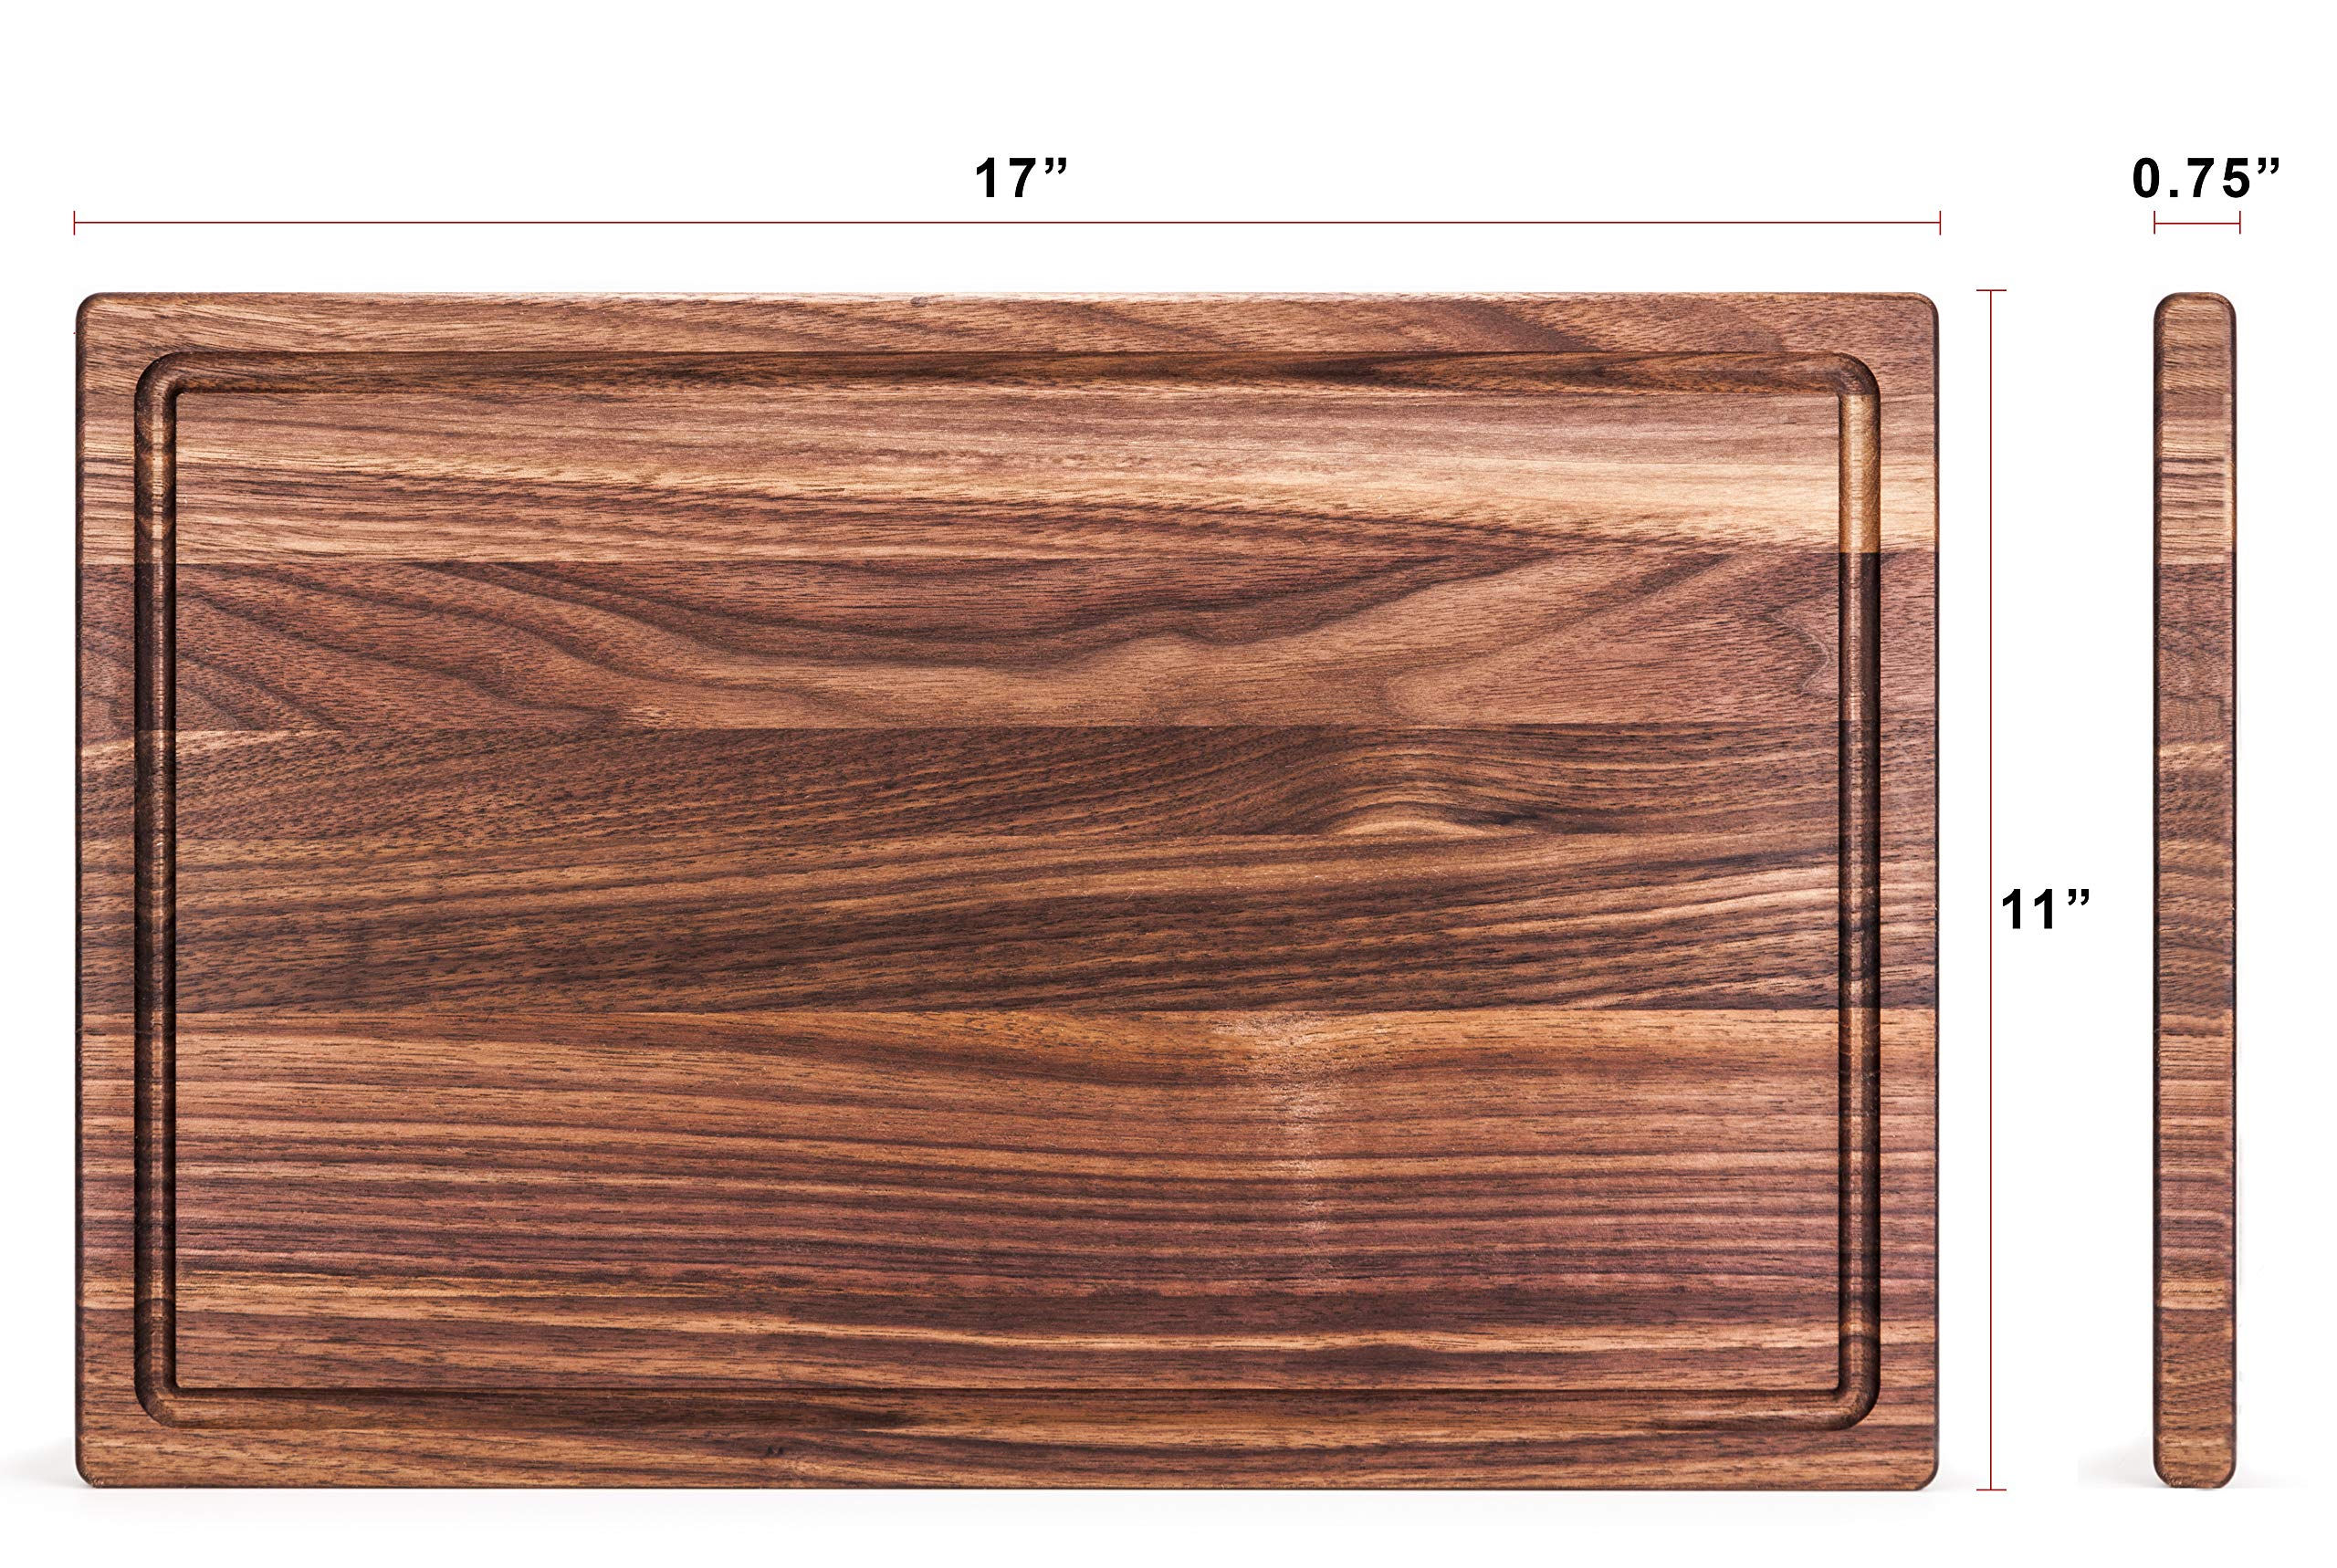 Boilton Large Walnut Wood Cutting Board - 17x11 with Juice Drip Groove, Big American Hardwood Chopping and Carving Countertop Block by Boilton (Image #7)